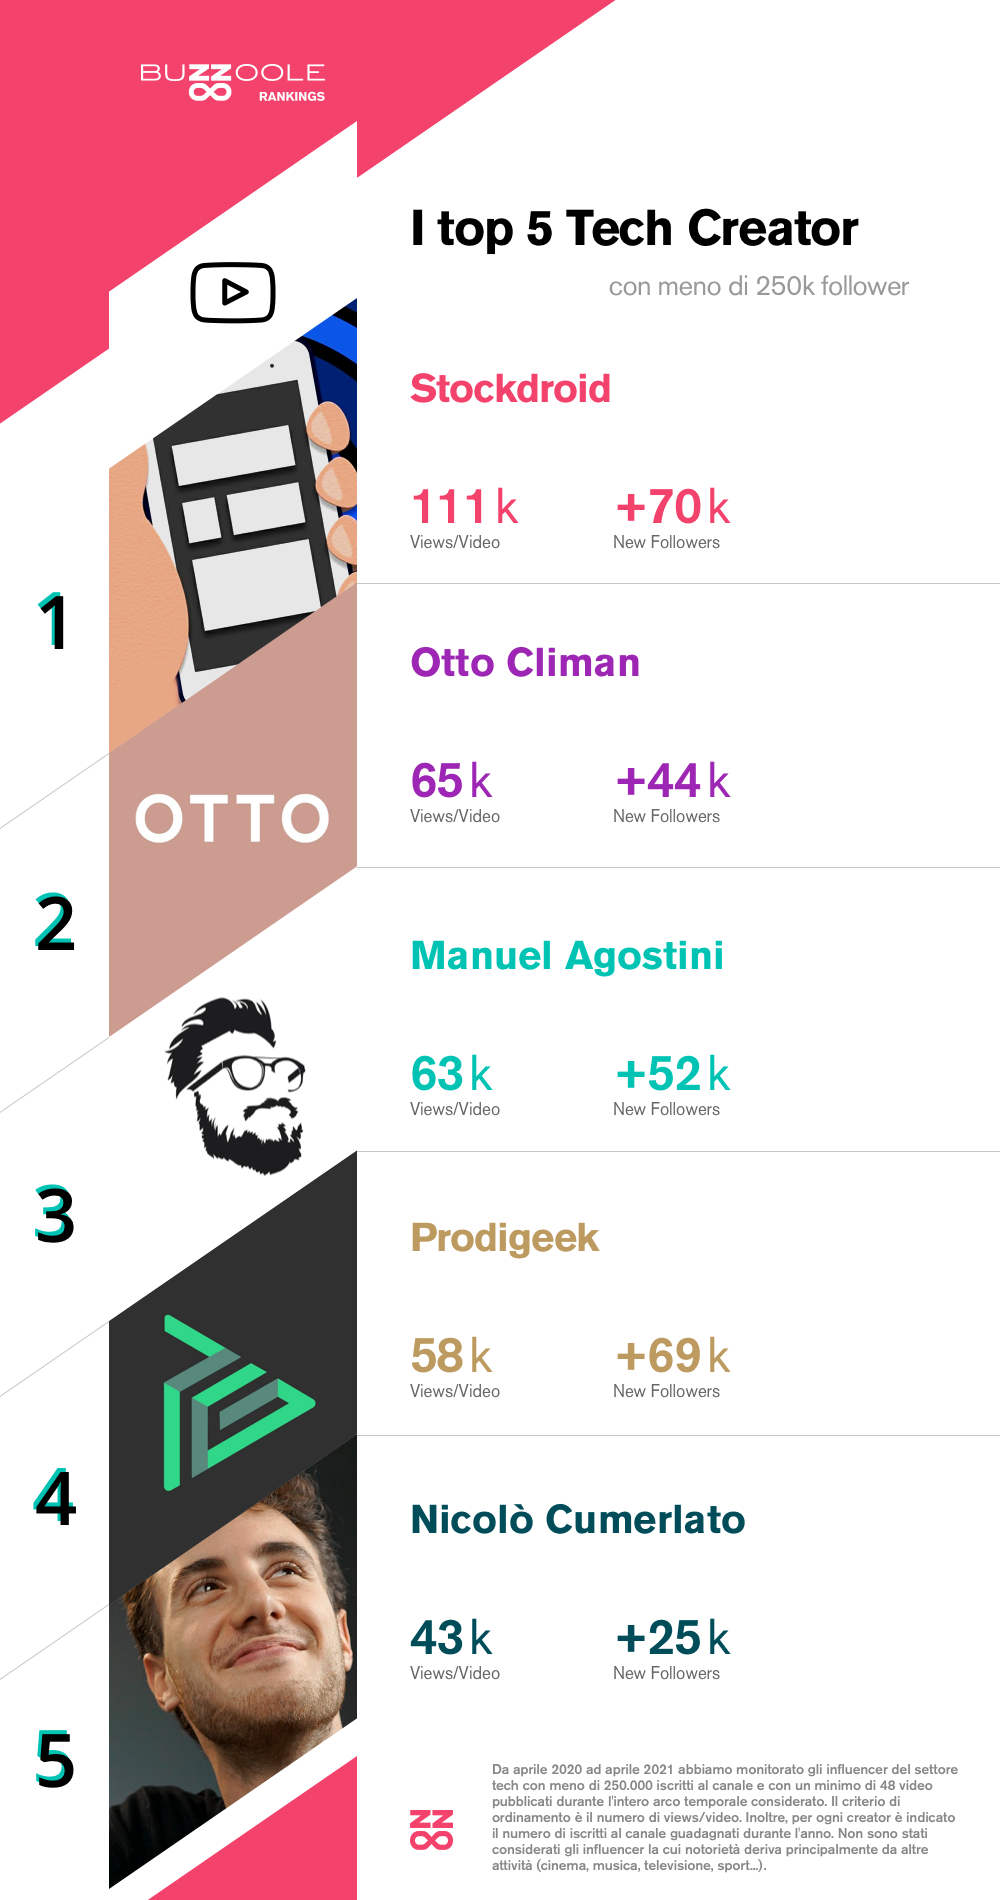 Classifica dei migliori micro-influencer italiani su YouTube: 1) Stockdroid 2) Otto Climan 3) Manuel Agostini 4) Prodigeek 5) Nicolò Cumerlato